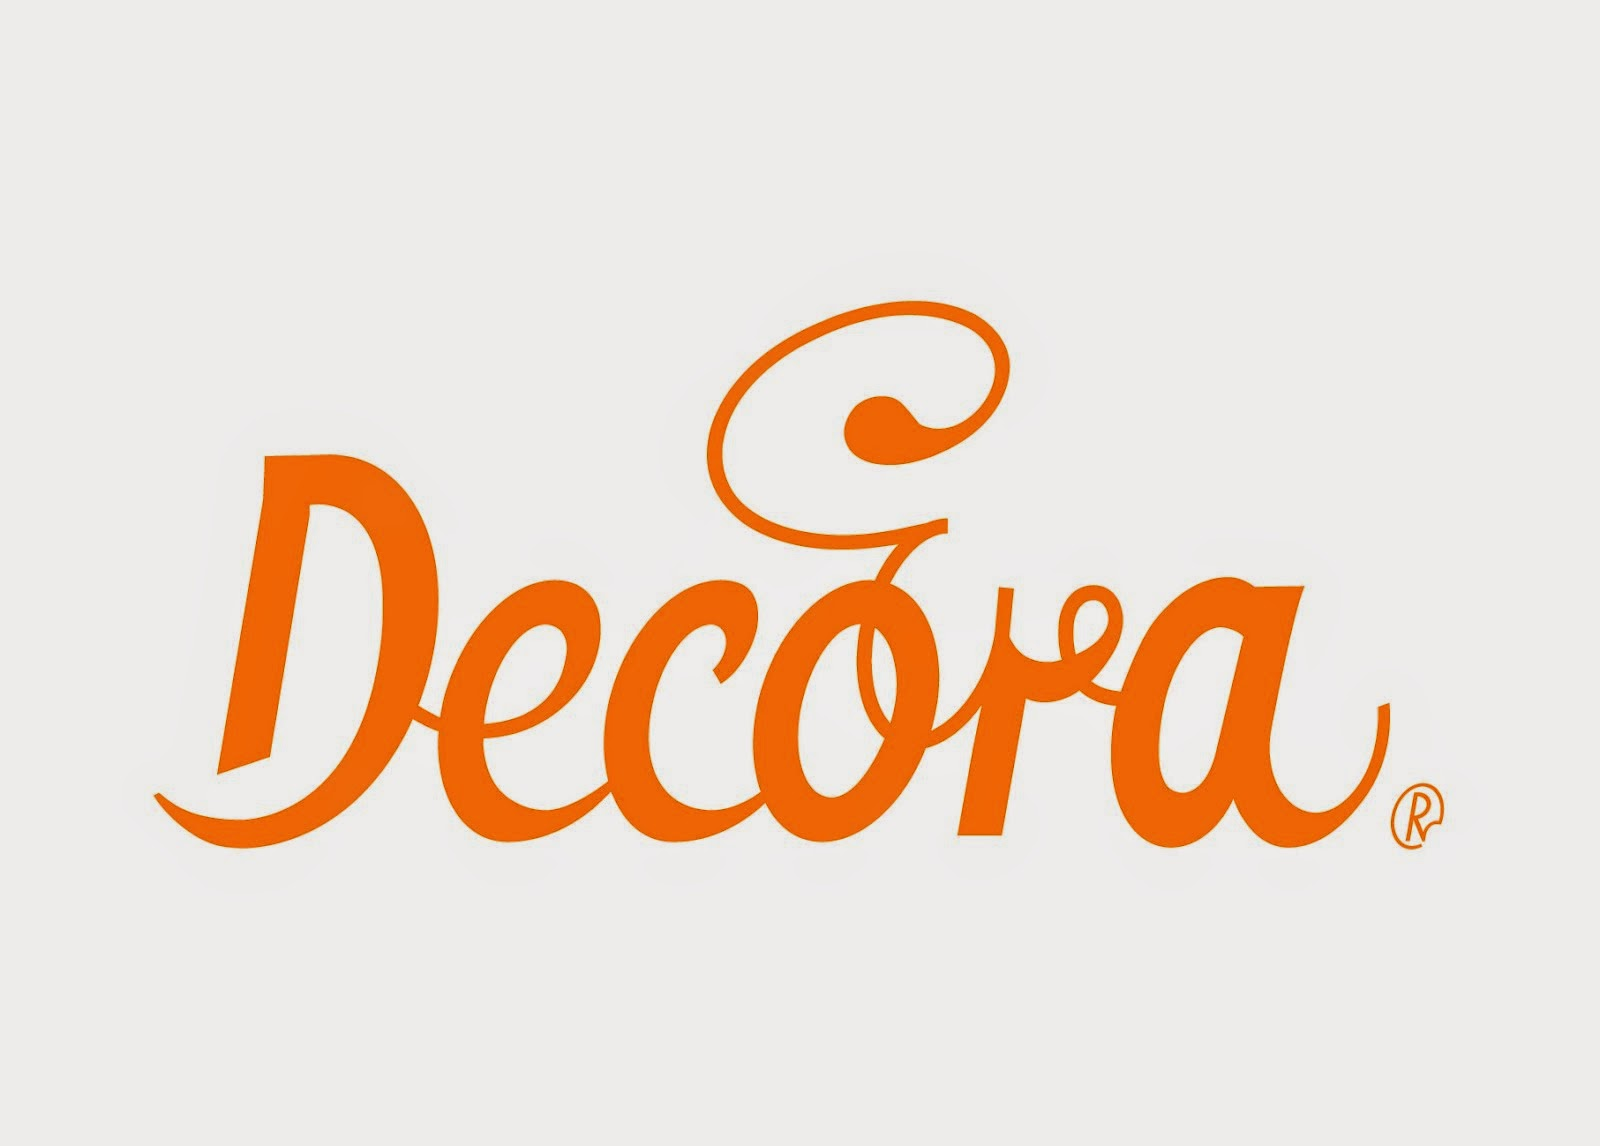 decora.it